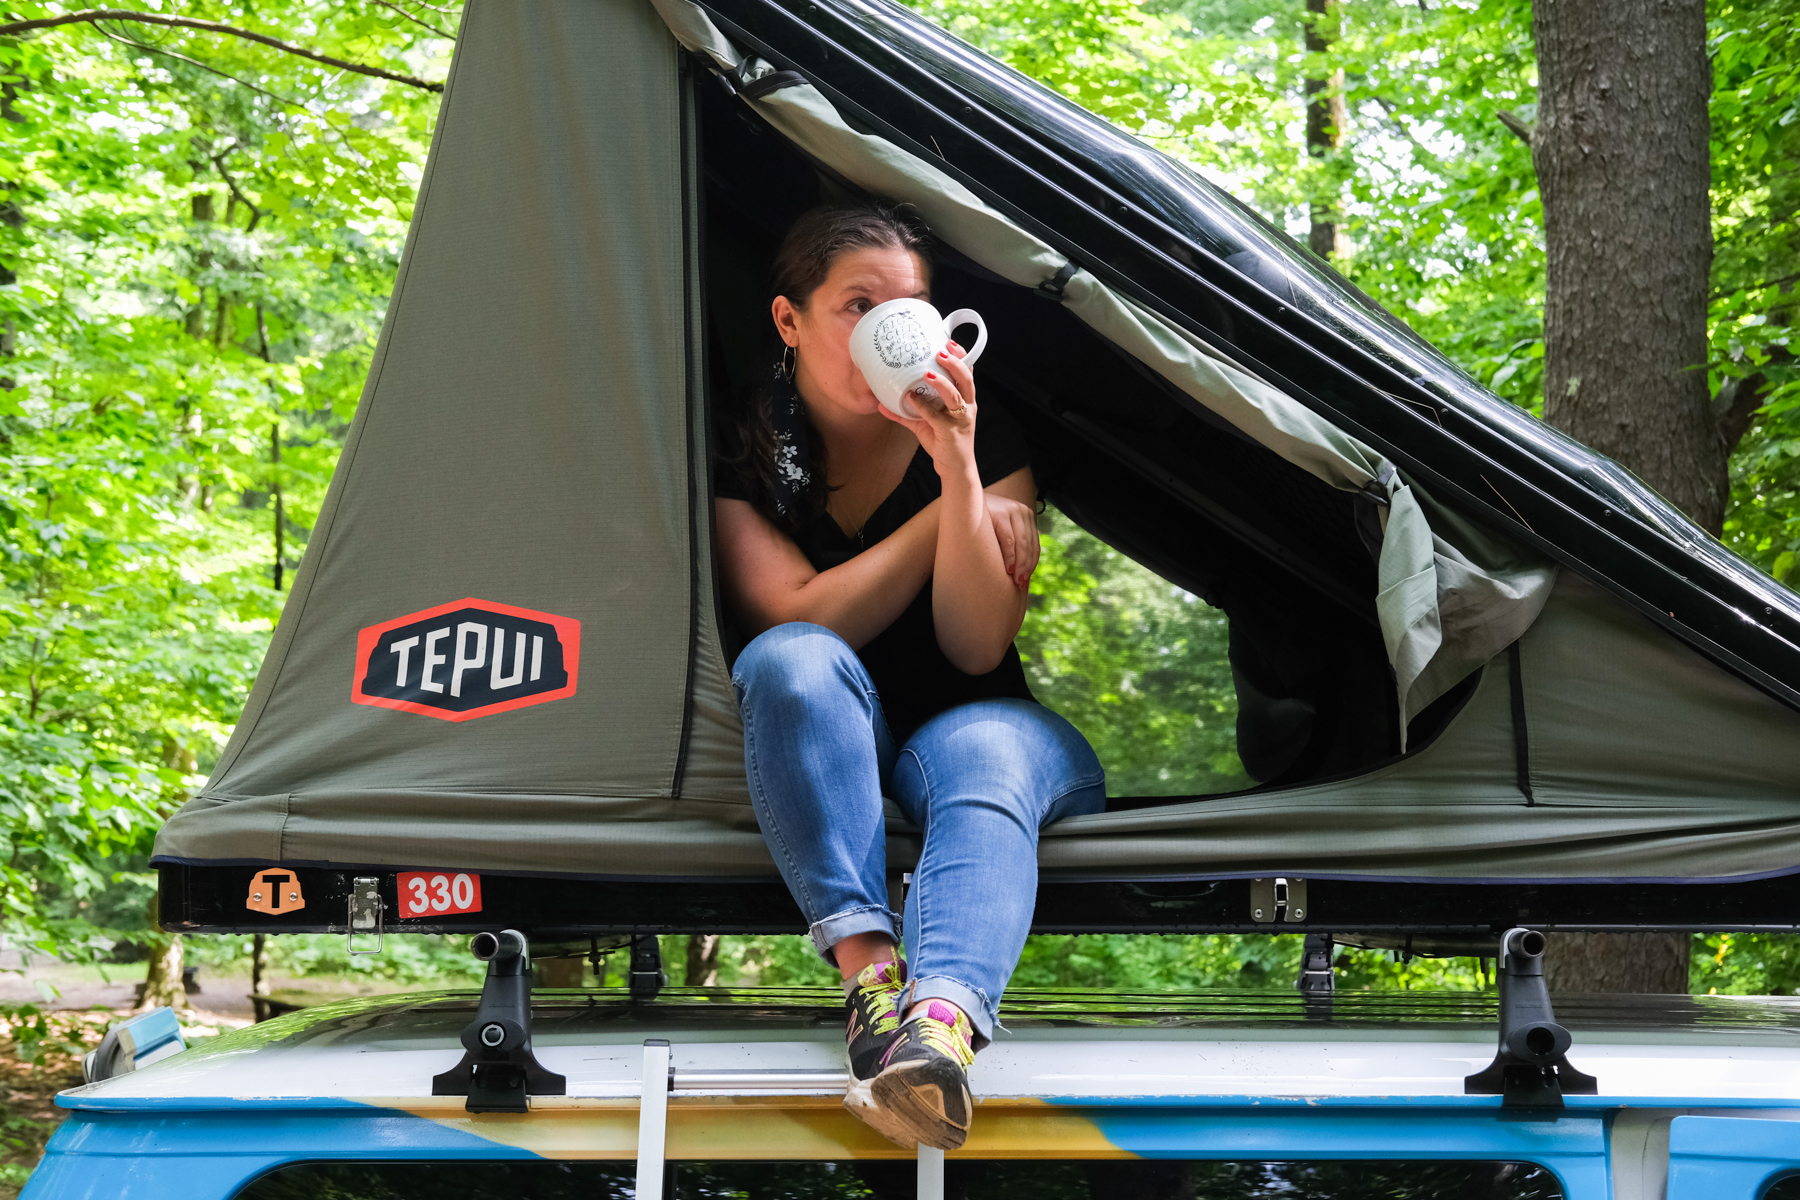 drinking coffee in a tent on top of a campervan